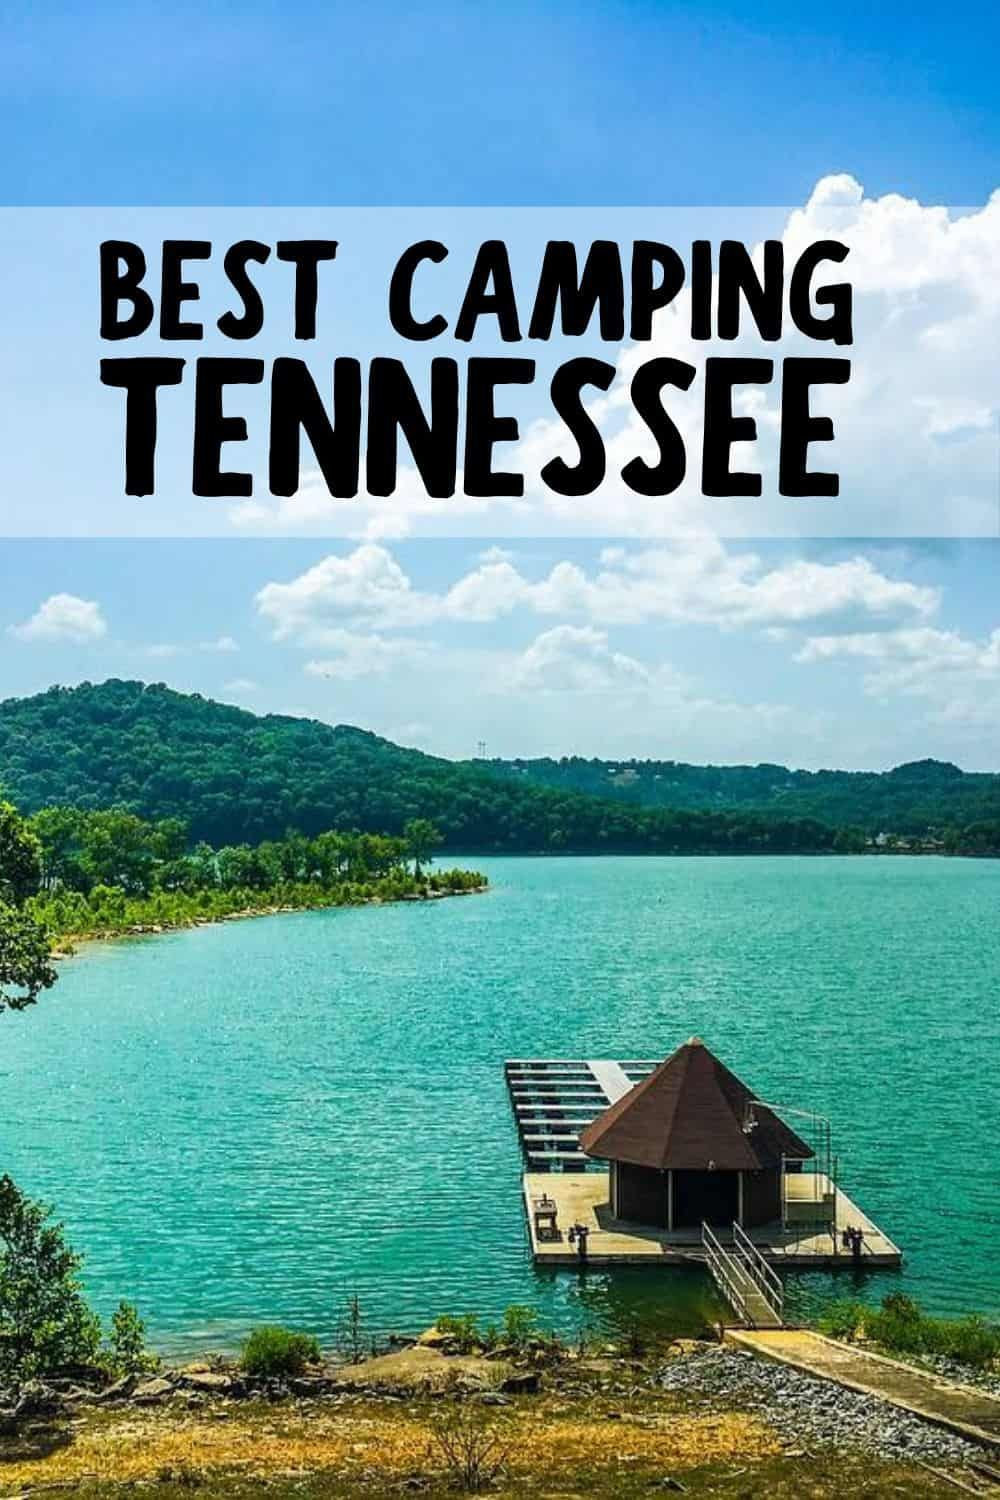 10 Best Camping Sites In Tennessee To Check Out In 2020 In 2020 Camping Locations Camping In Tennessee Best Places To Camp